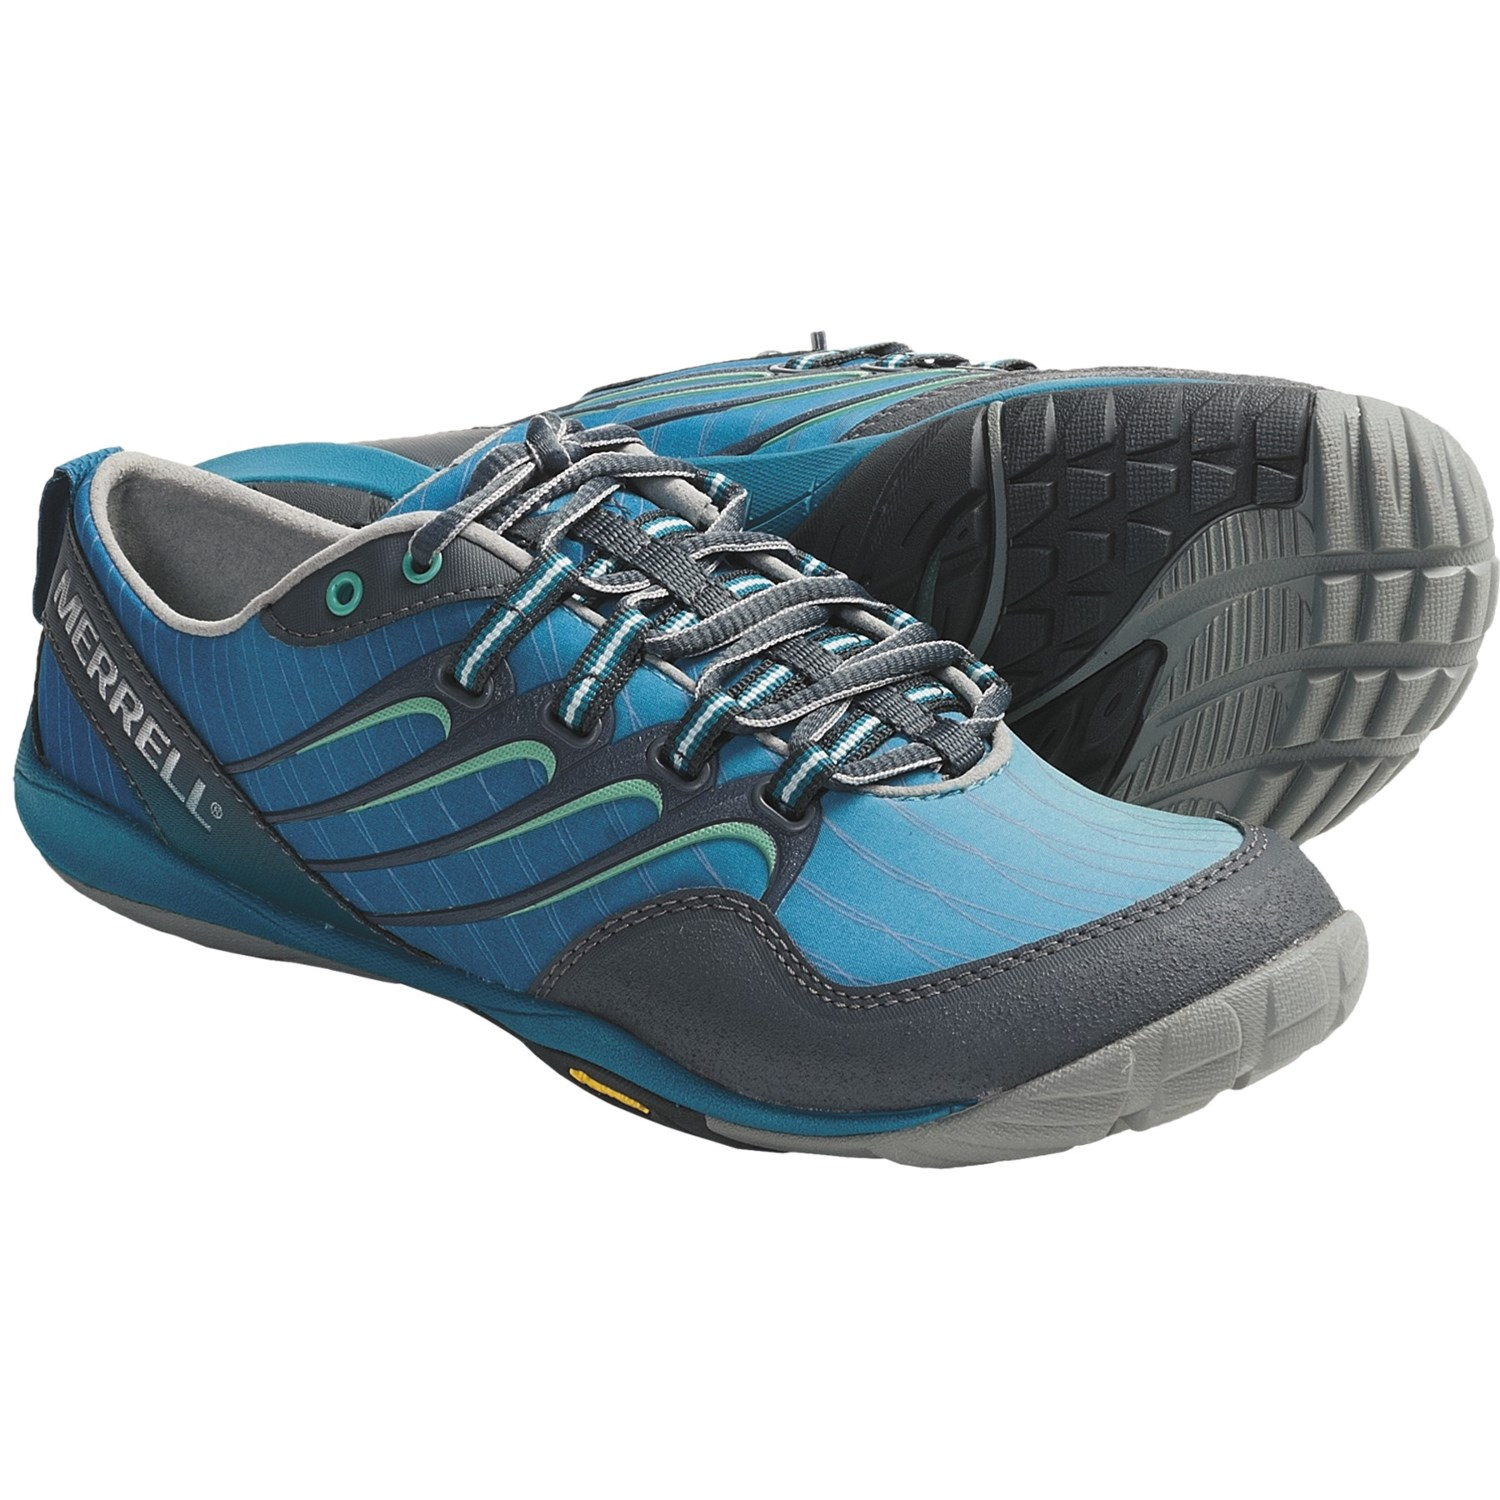 Omni Fit Women S Running Shoes